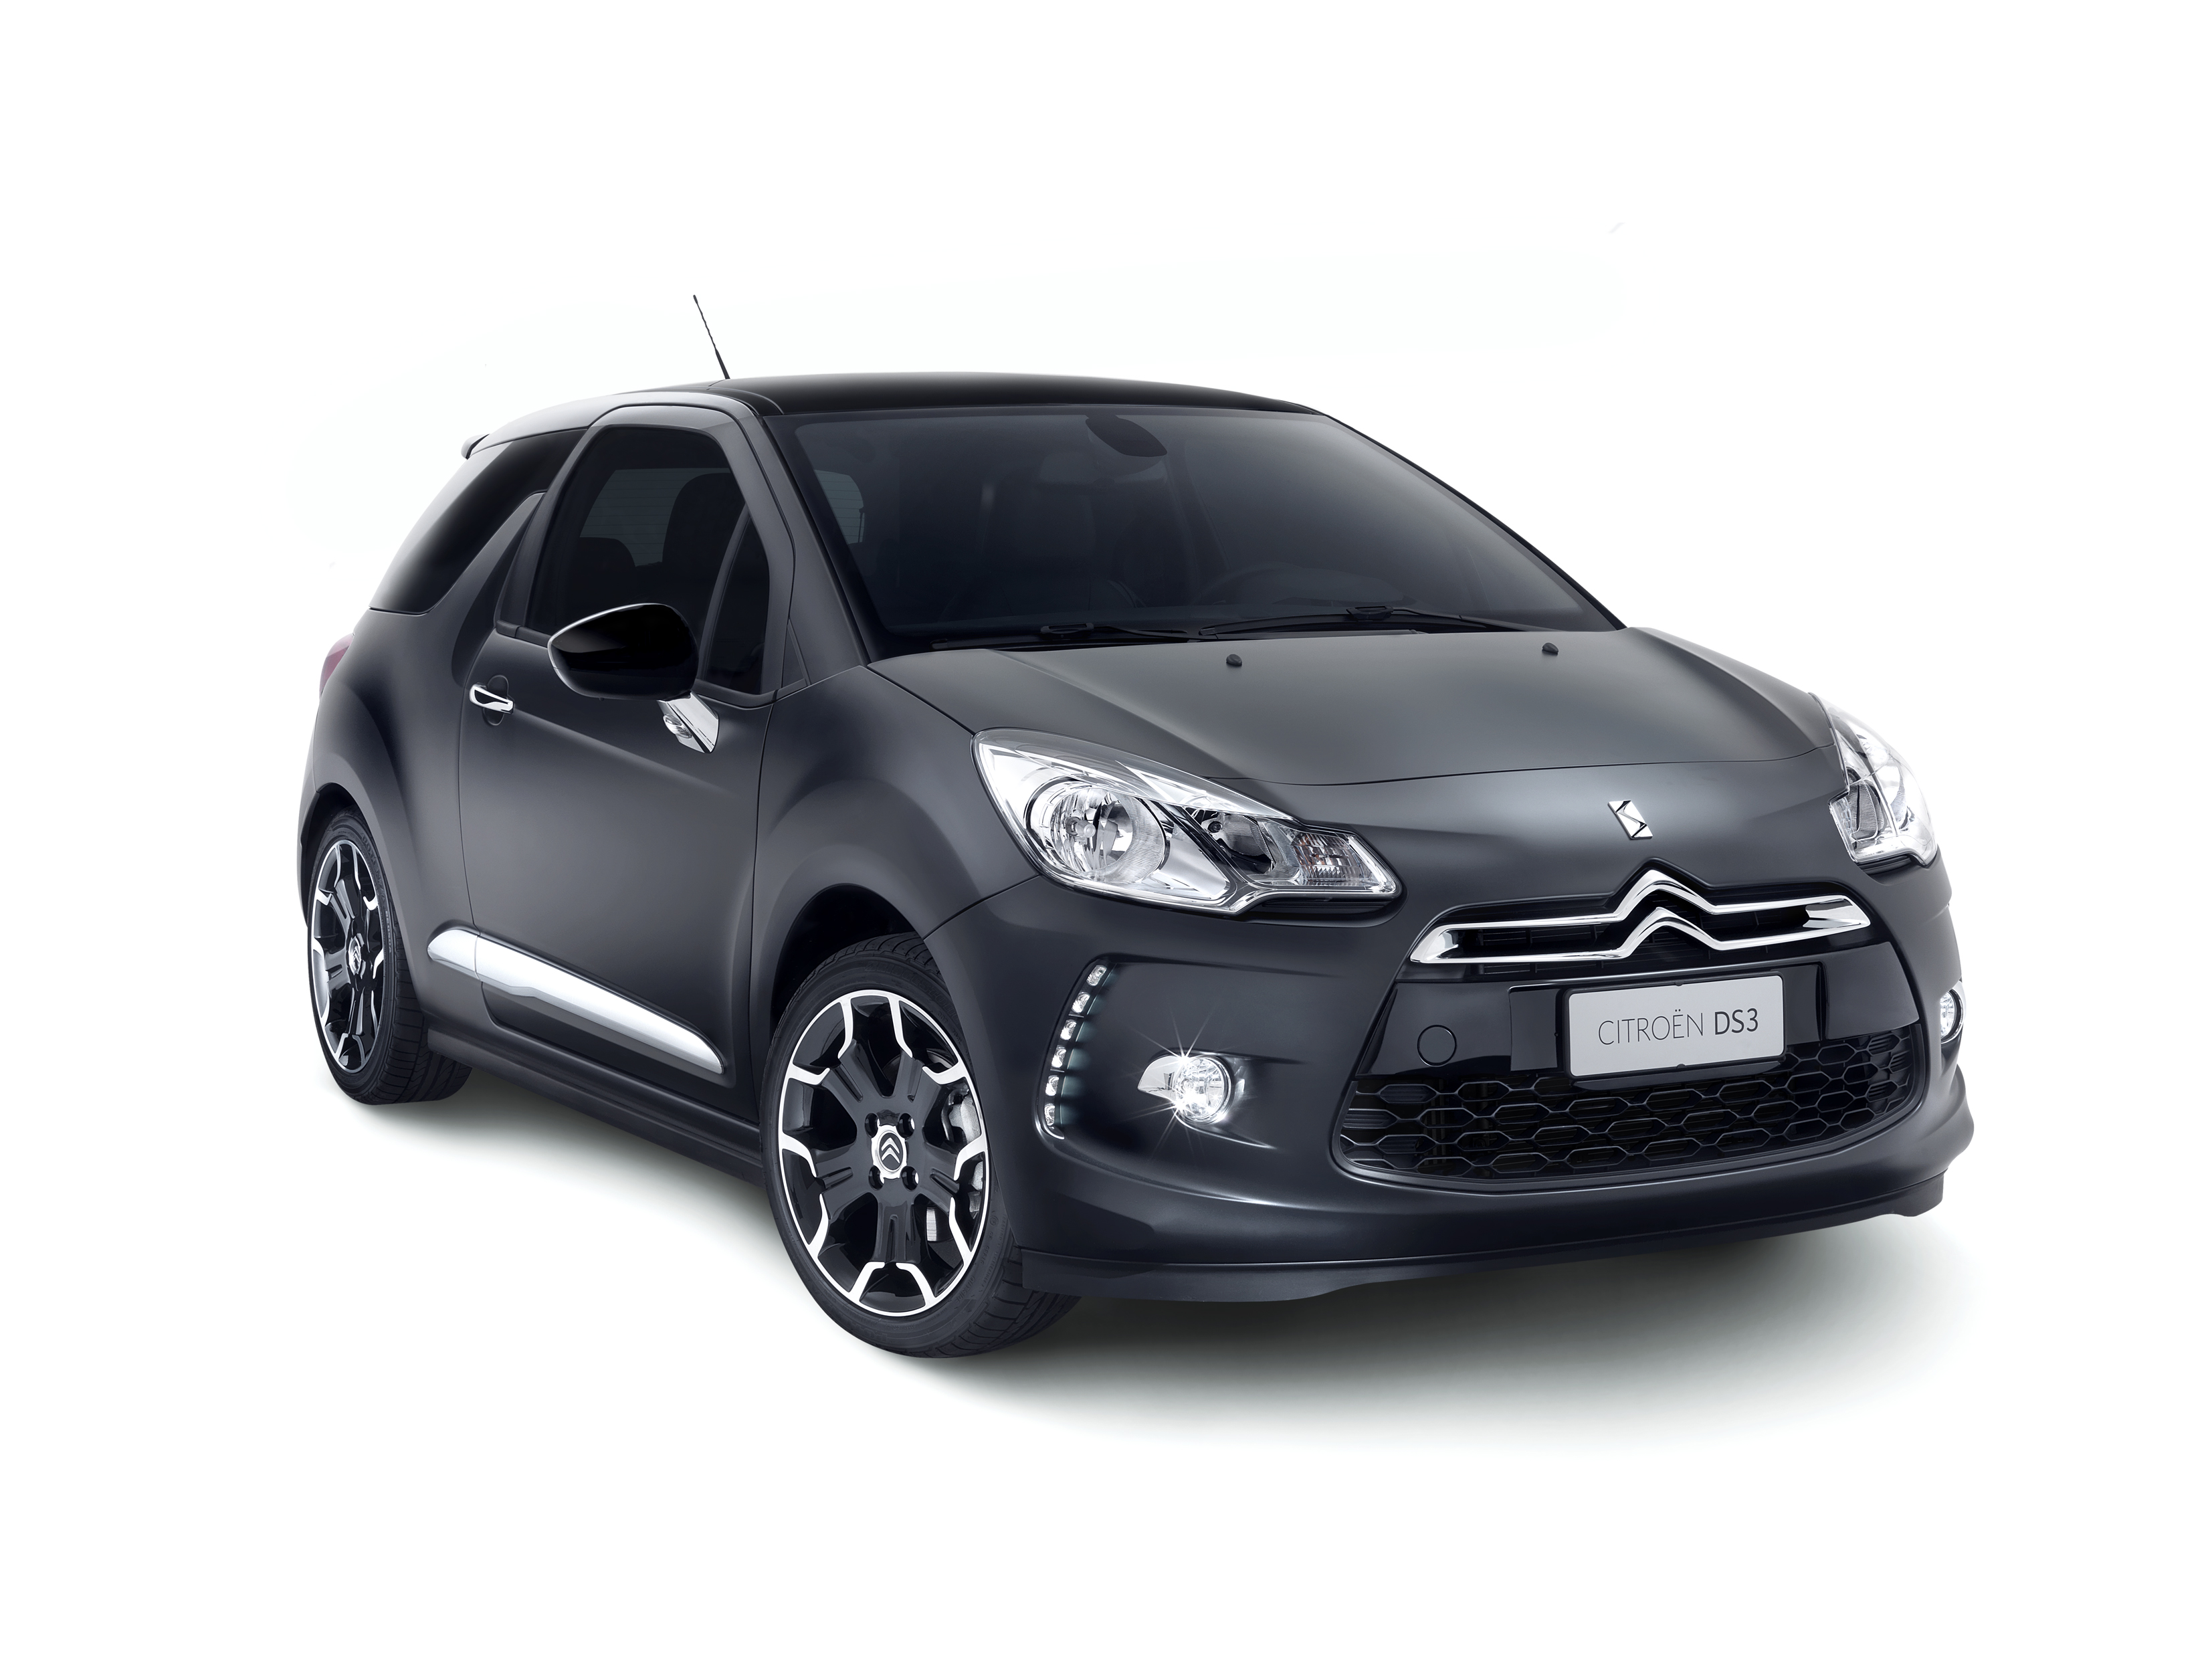 CITROEN DS3 black